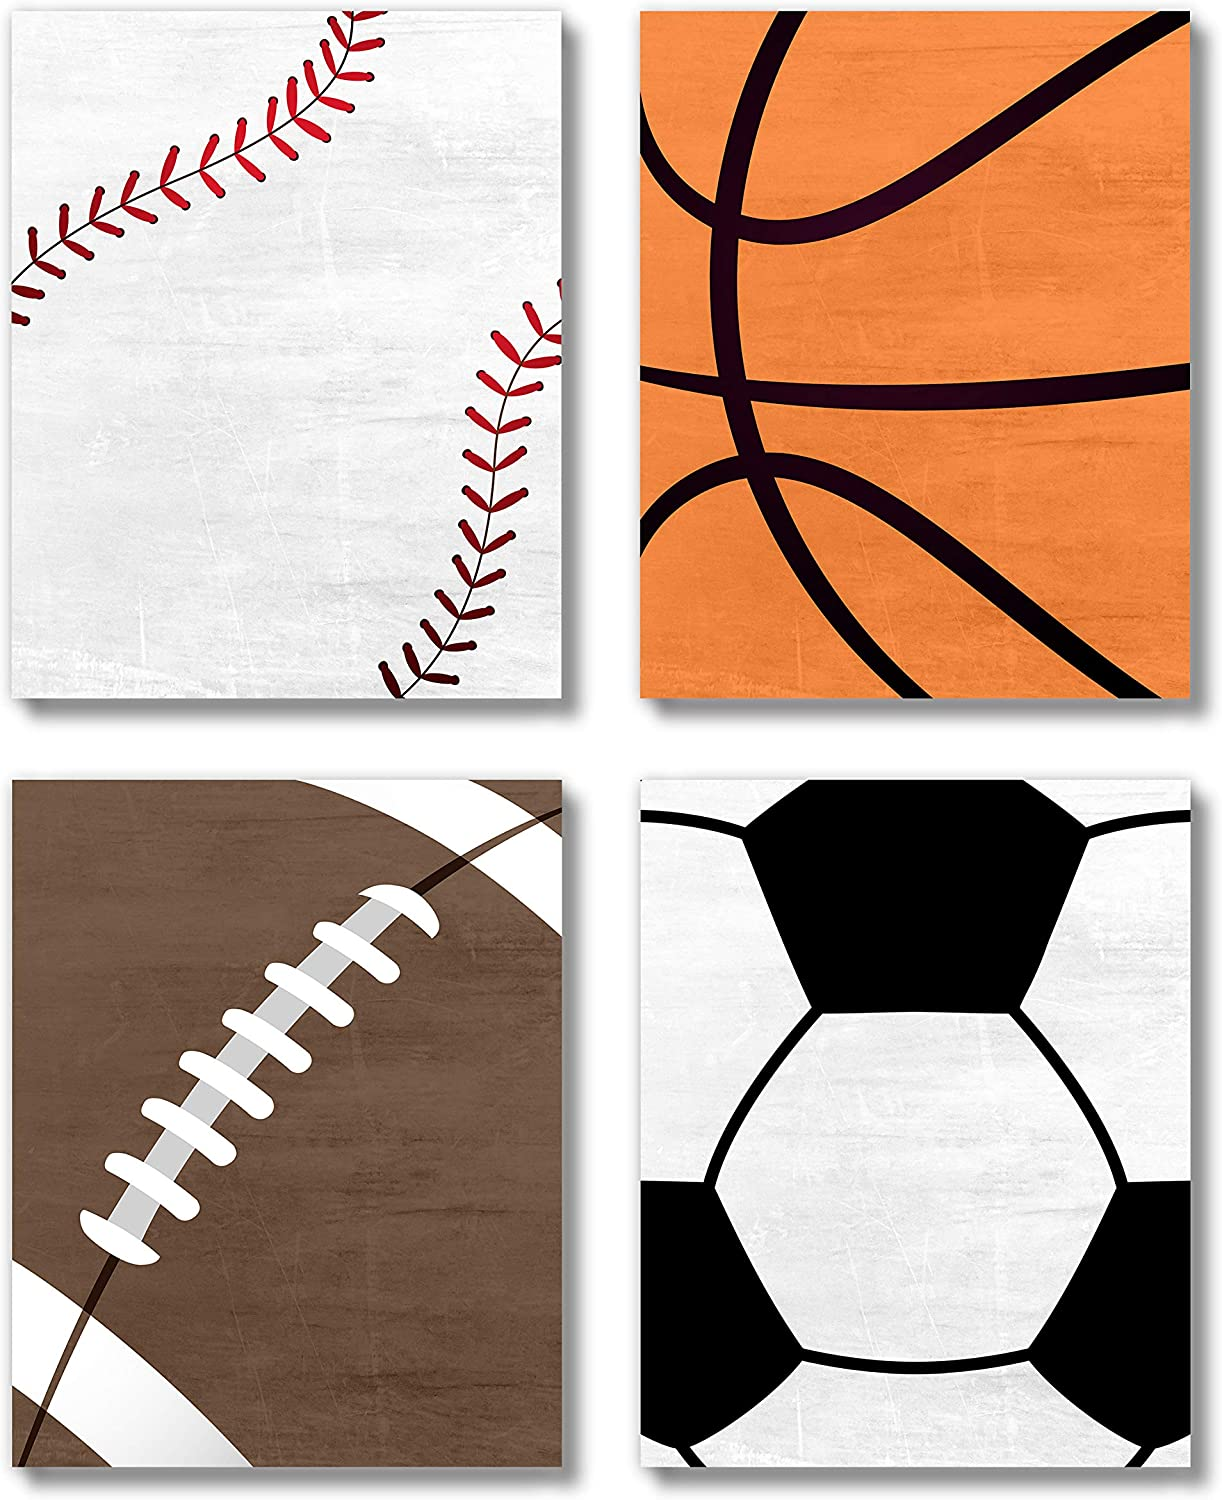 Brooke & Vine Sports Boys Room Nursery Wall Decor Art Prints Set (UNFRAMED 8x10) Basketball, Baseball, Soccer, Football Farmhouse Toddler, Baby Girl, Baby Boy, Kids Playroom, Classroom (Sports Balls)